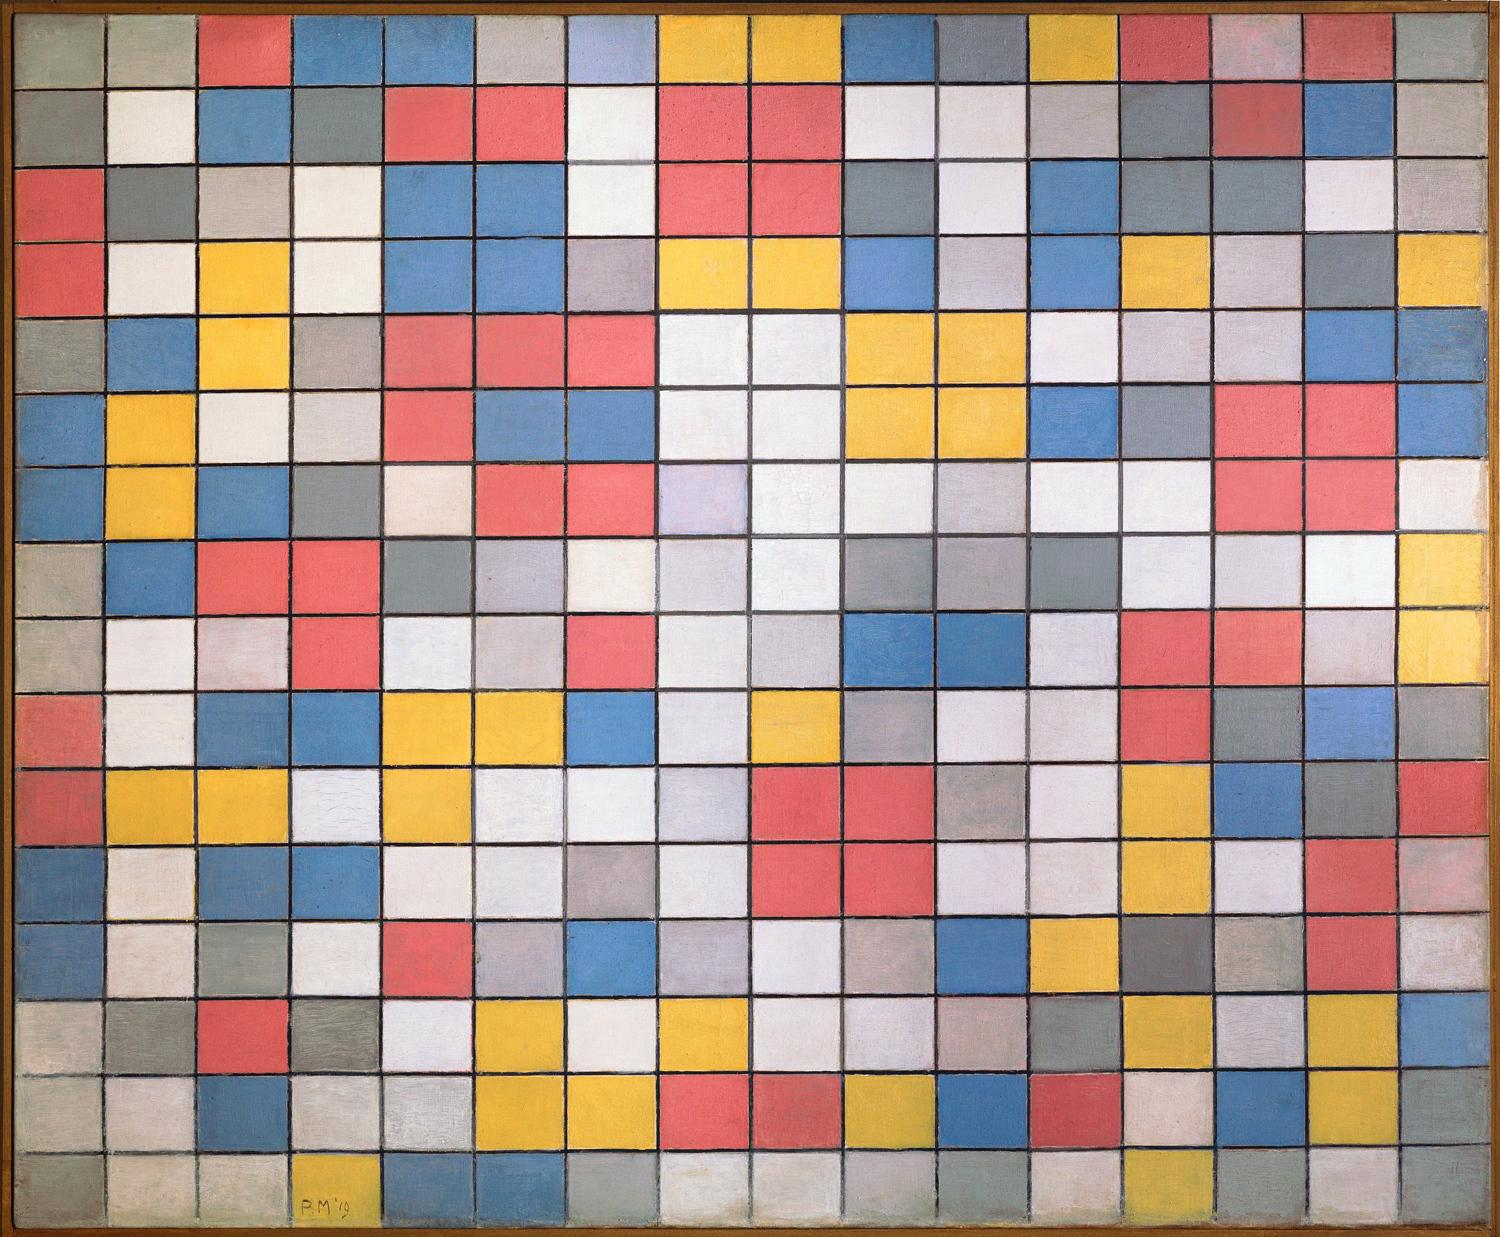 piet-mondrian-title-composition-with-grids-checkerboard